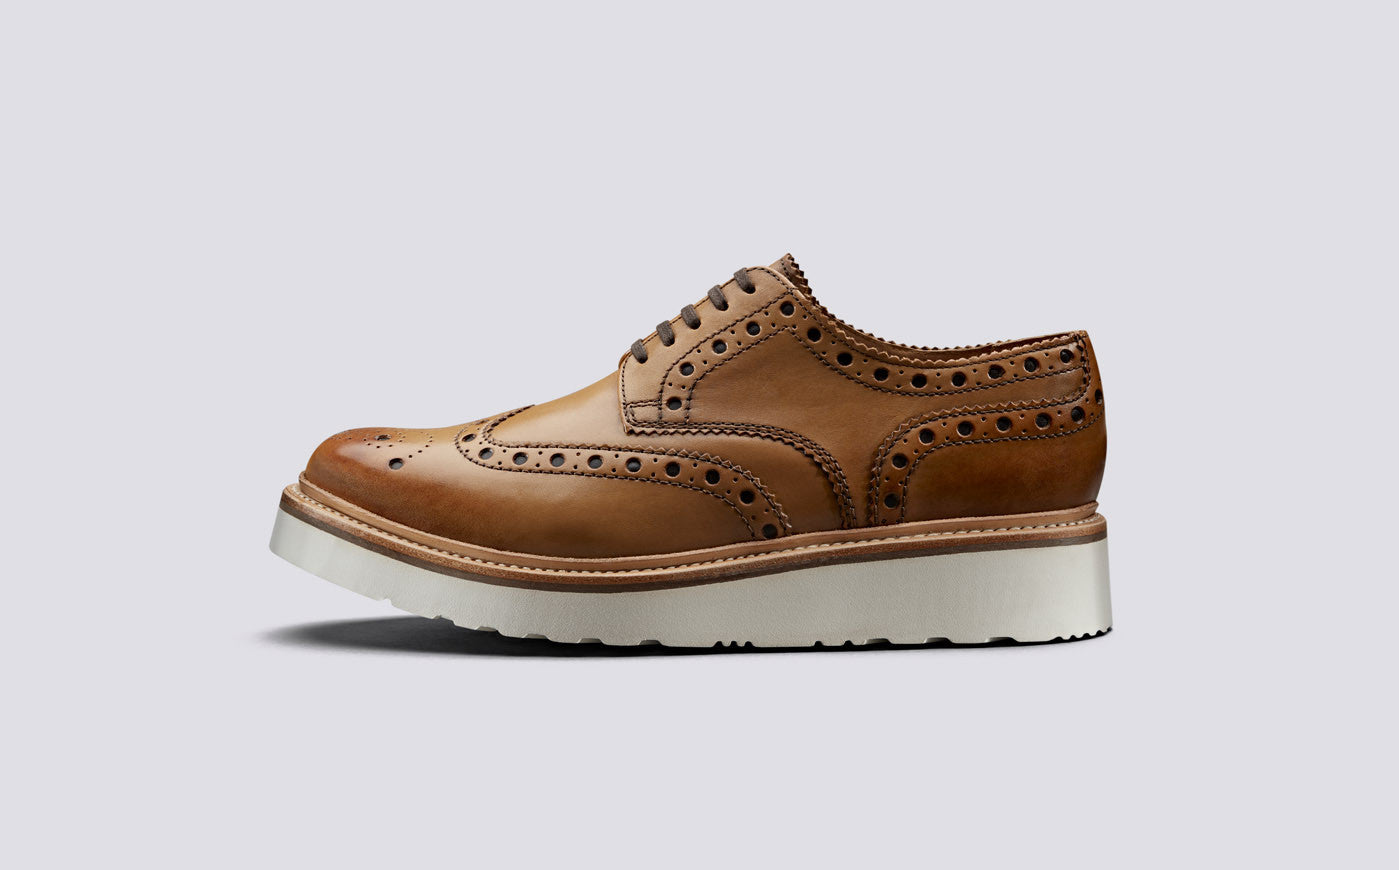 Grenson Archie Brogue Rubber Sole Shoes - Tan